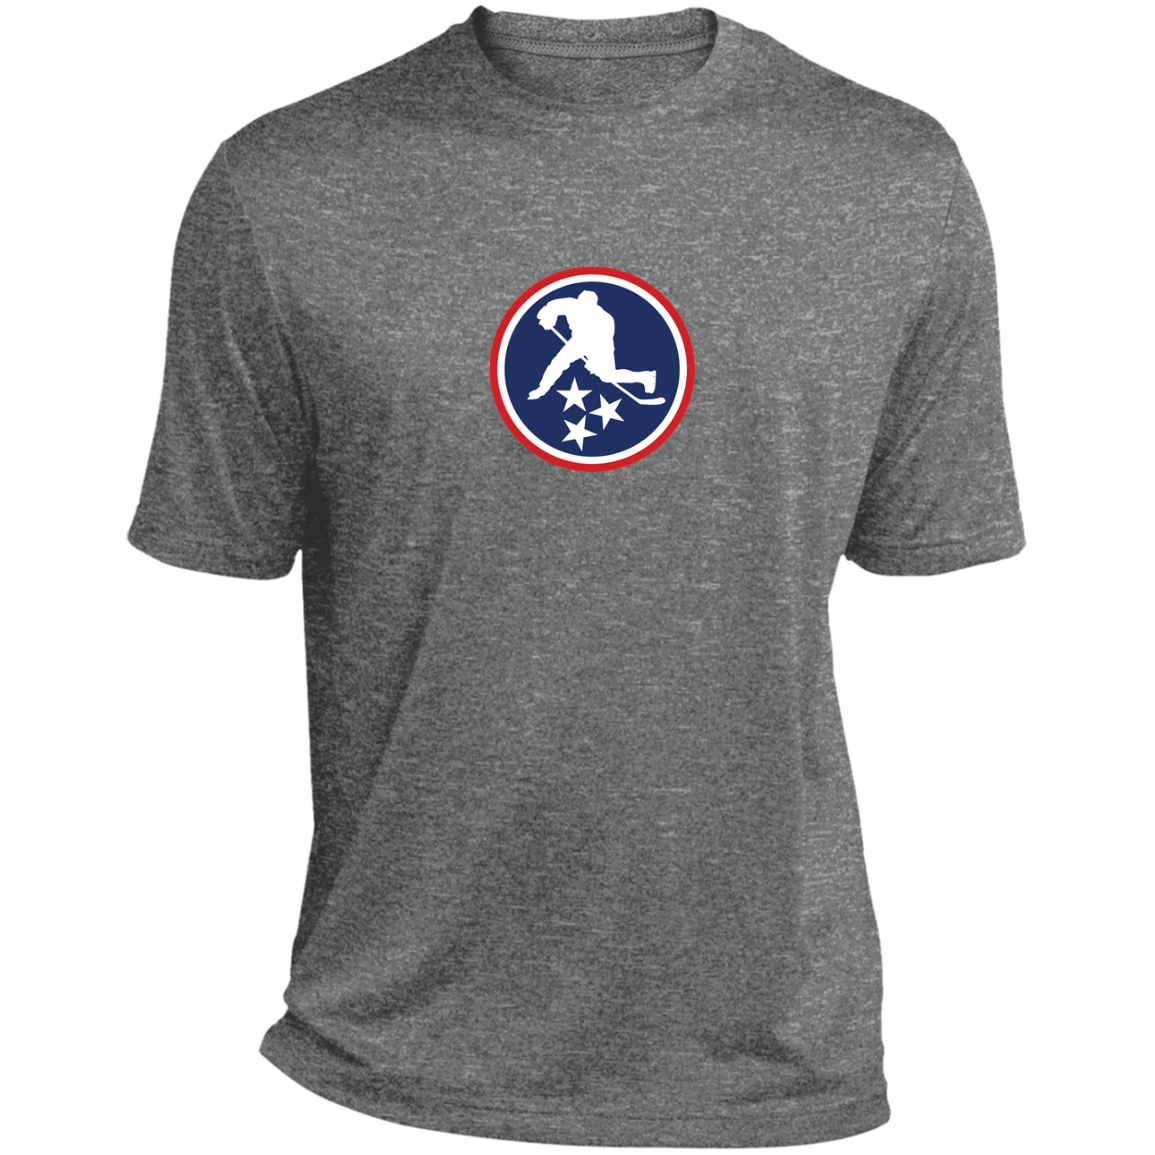 MEN'S DRI-FIT PERFORMANCE TEE